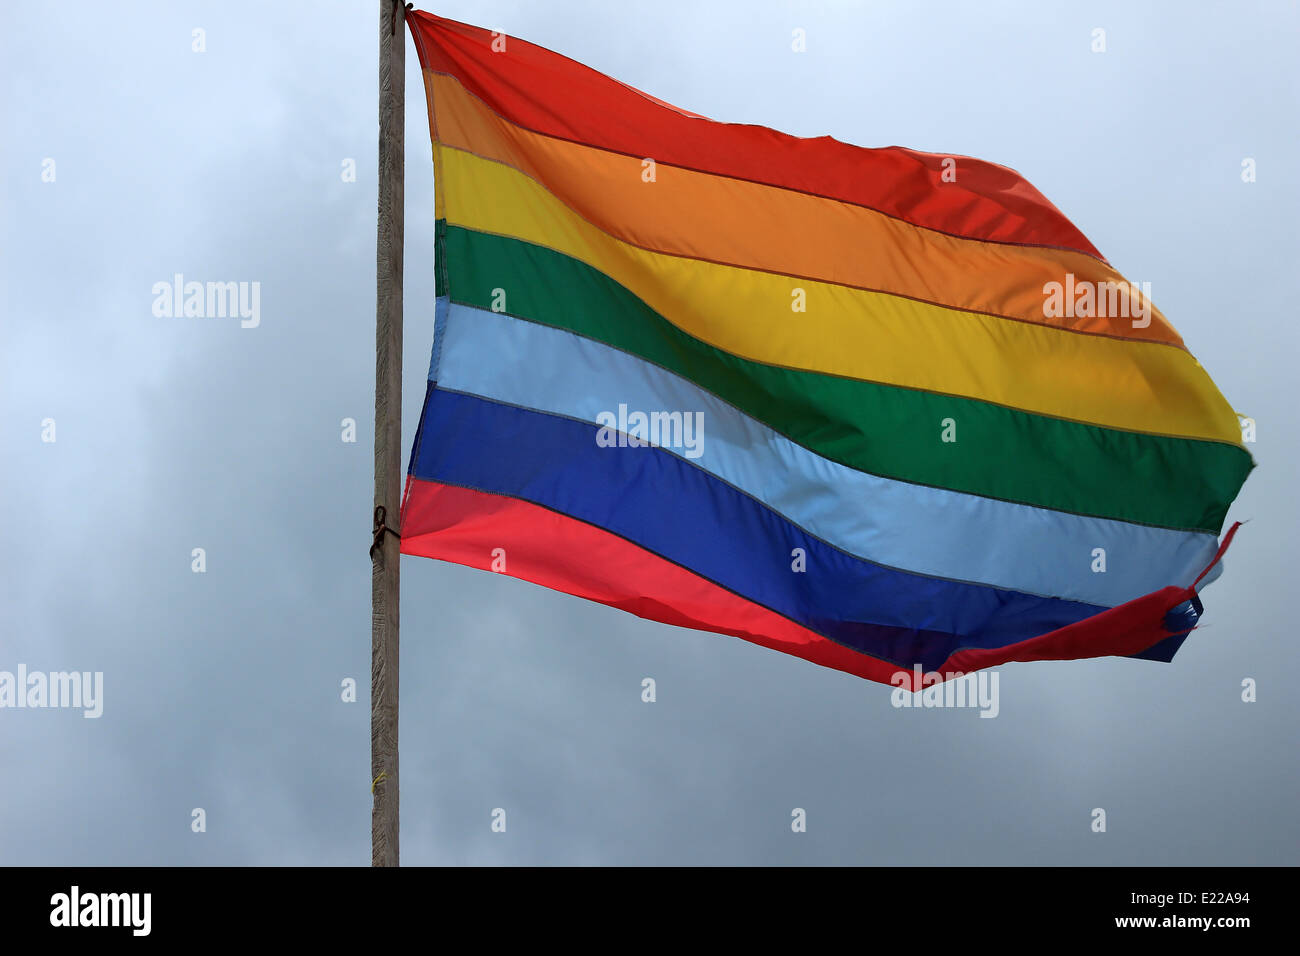 The striped flag of the indigenous people of Ecuador flying in Cotacachi, Ecuador - Stock Image